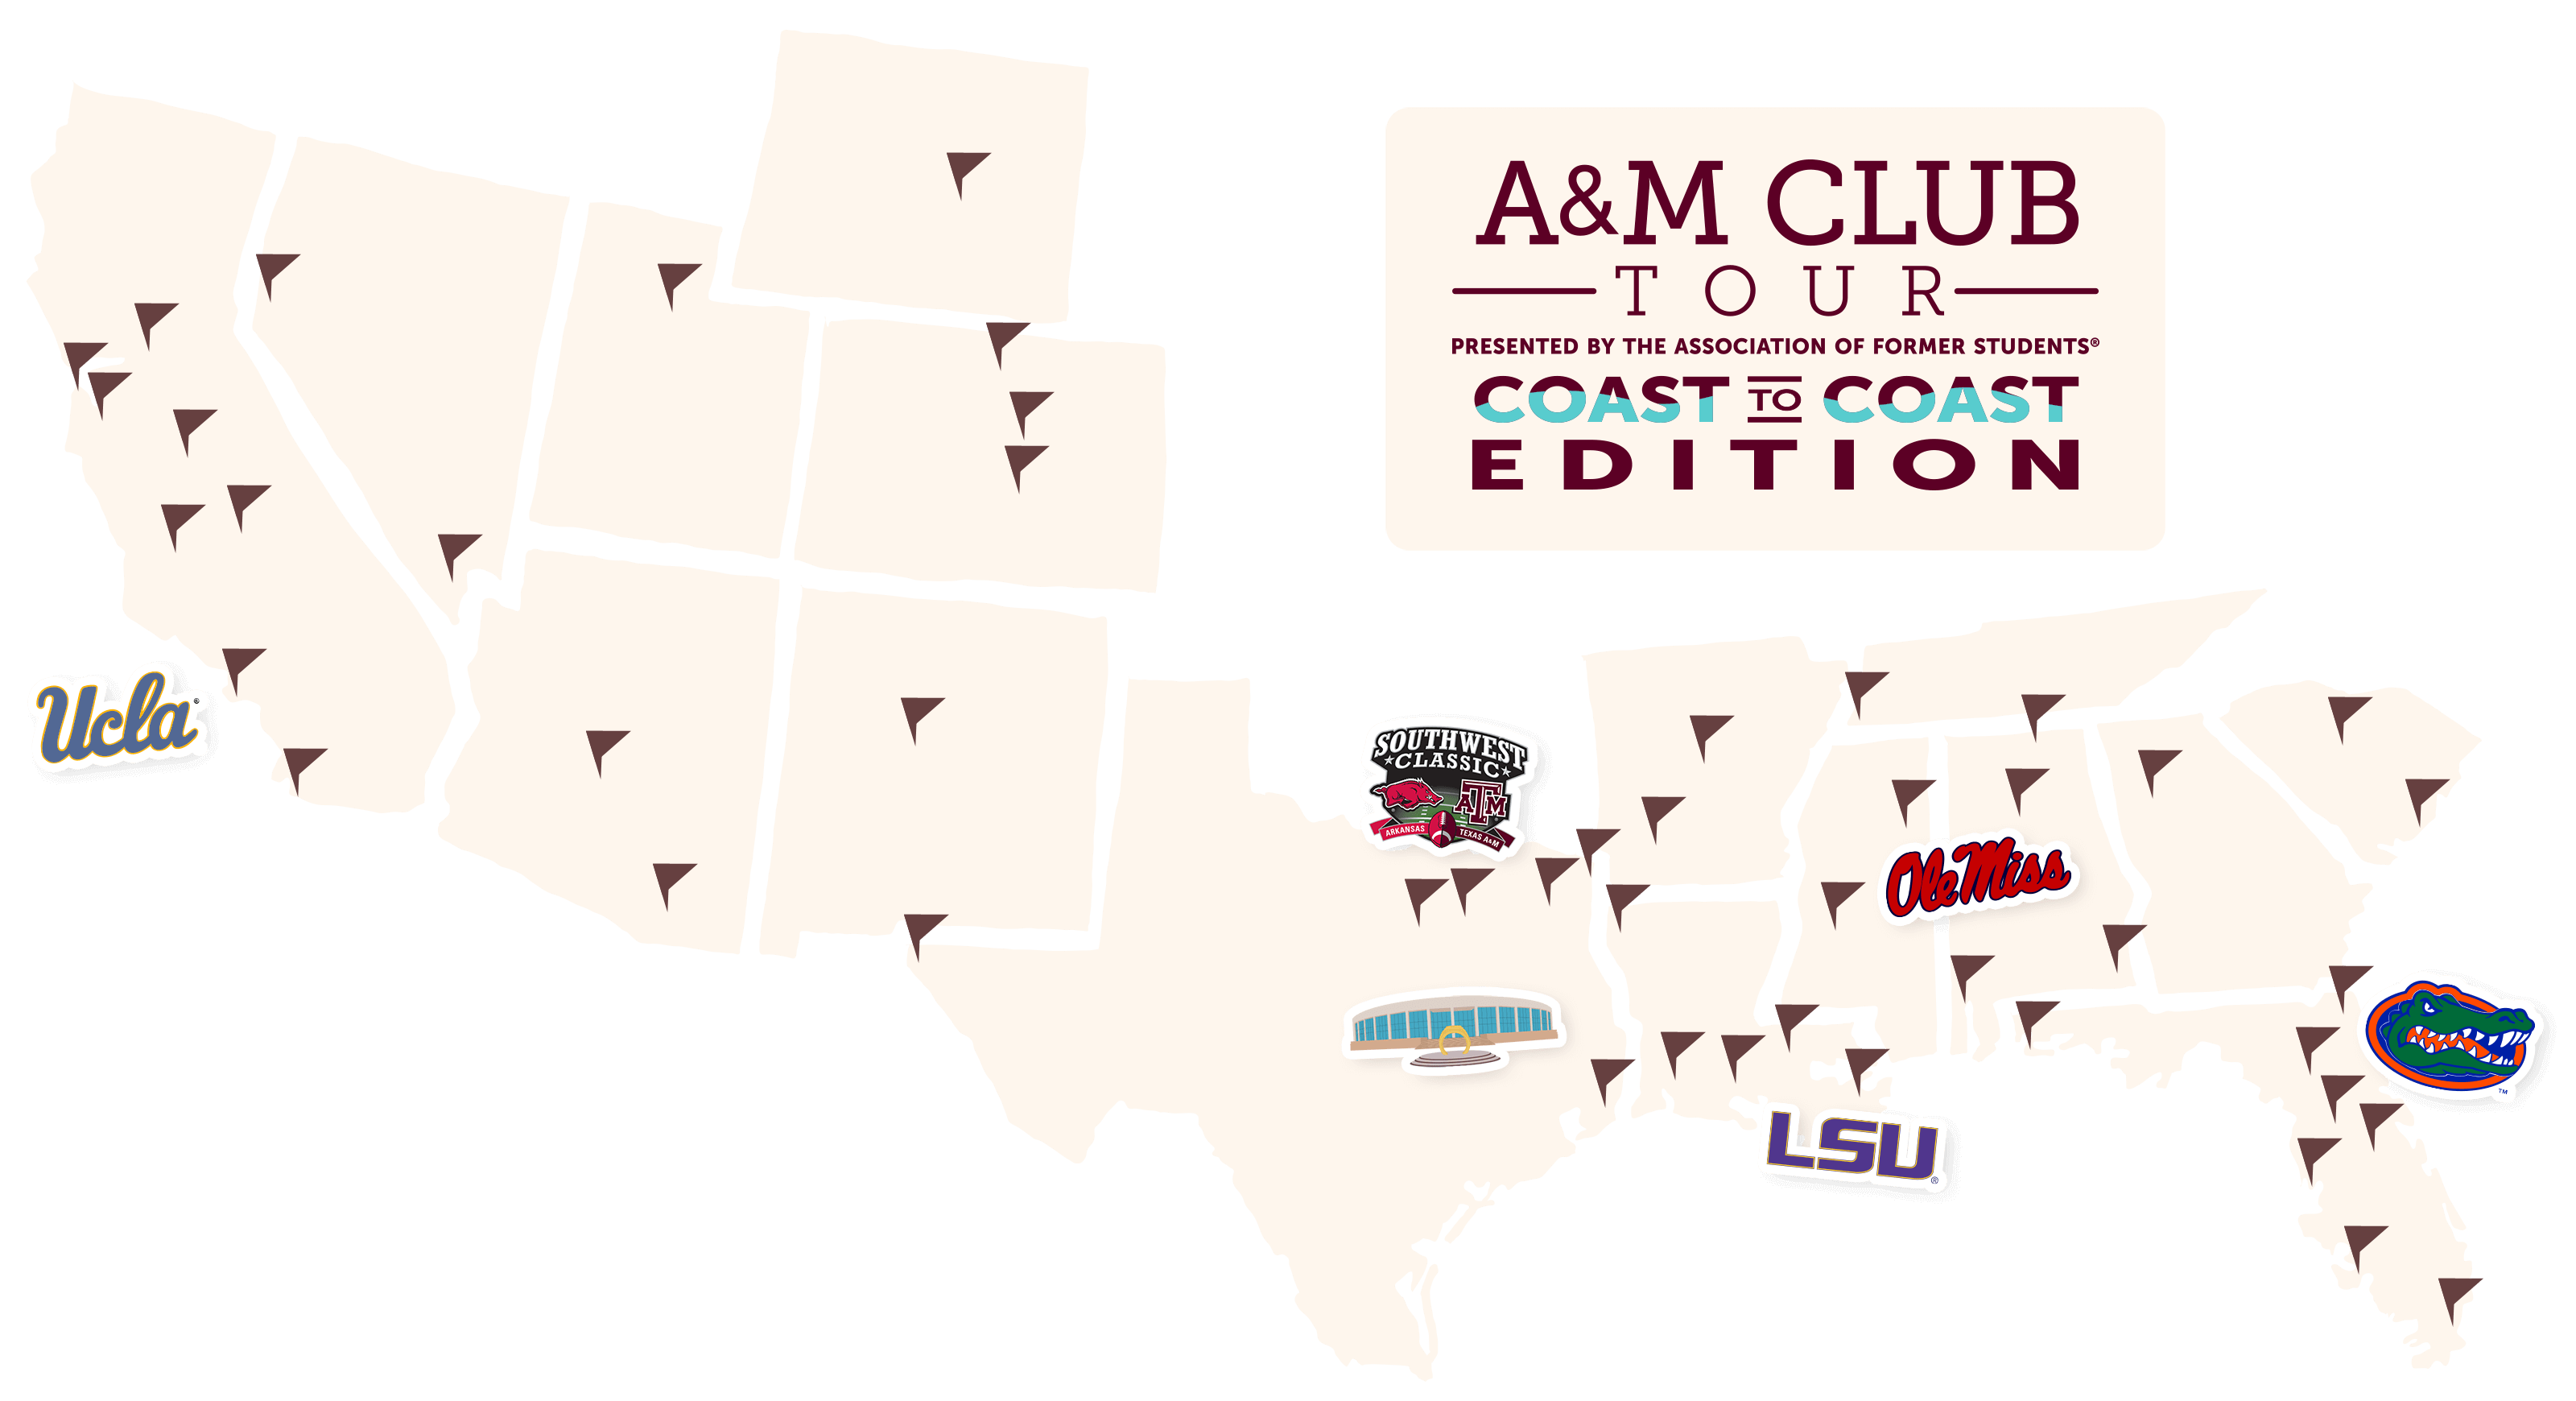 Coast to Coast A&M Club Tour Map